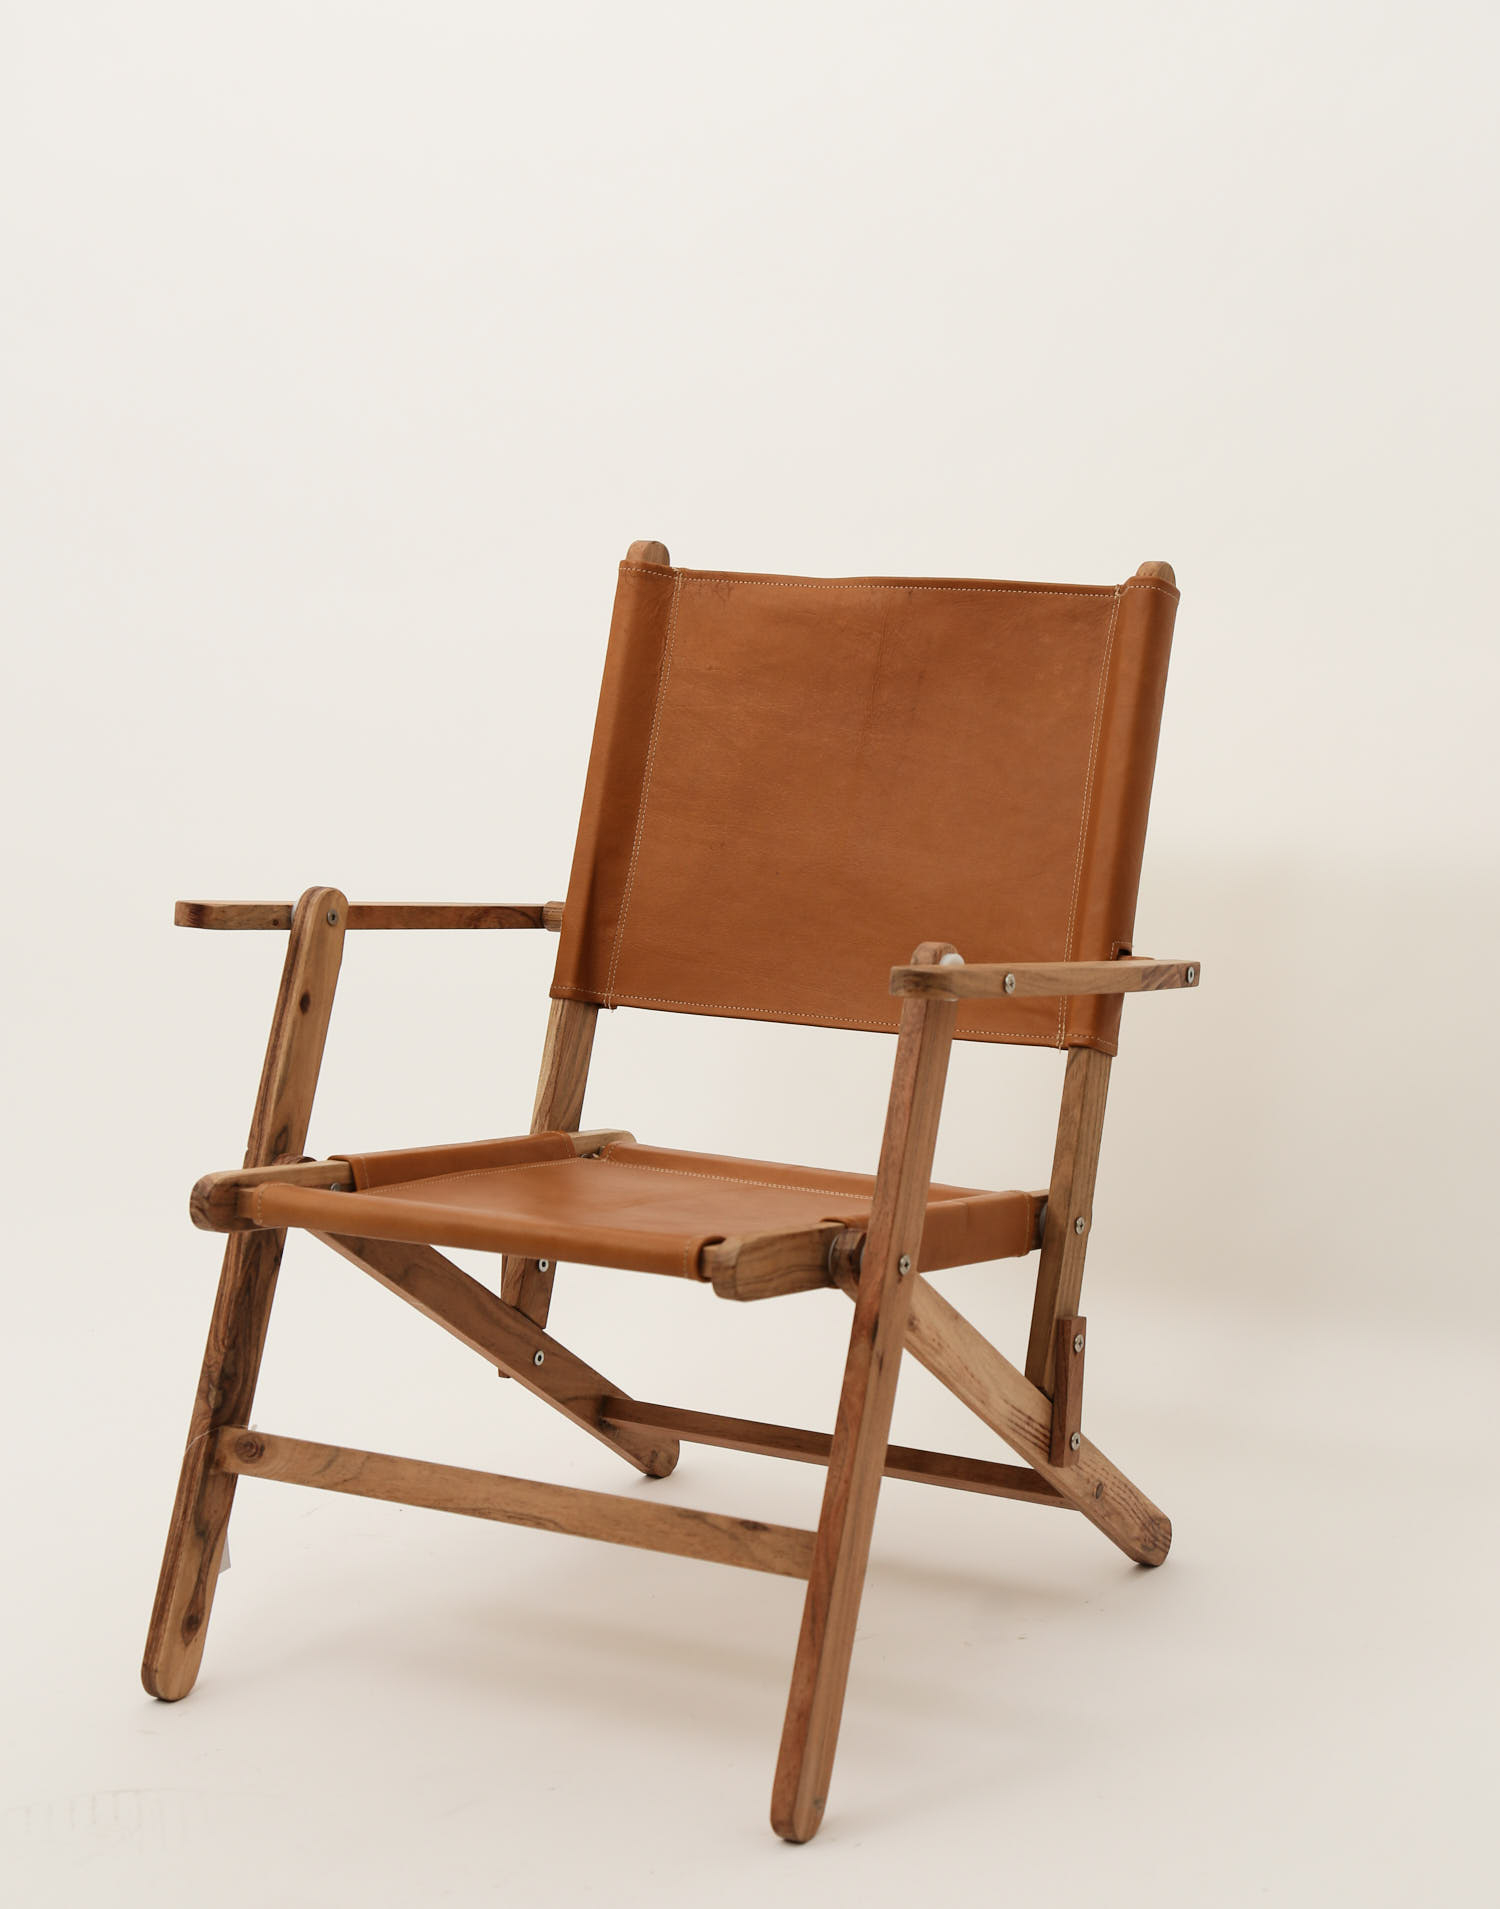 Wood and leather chair